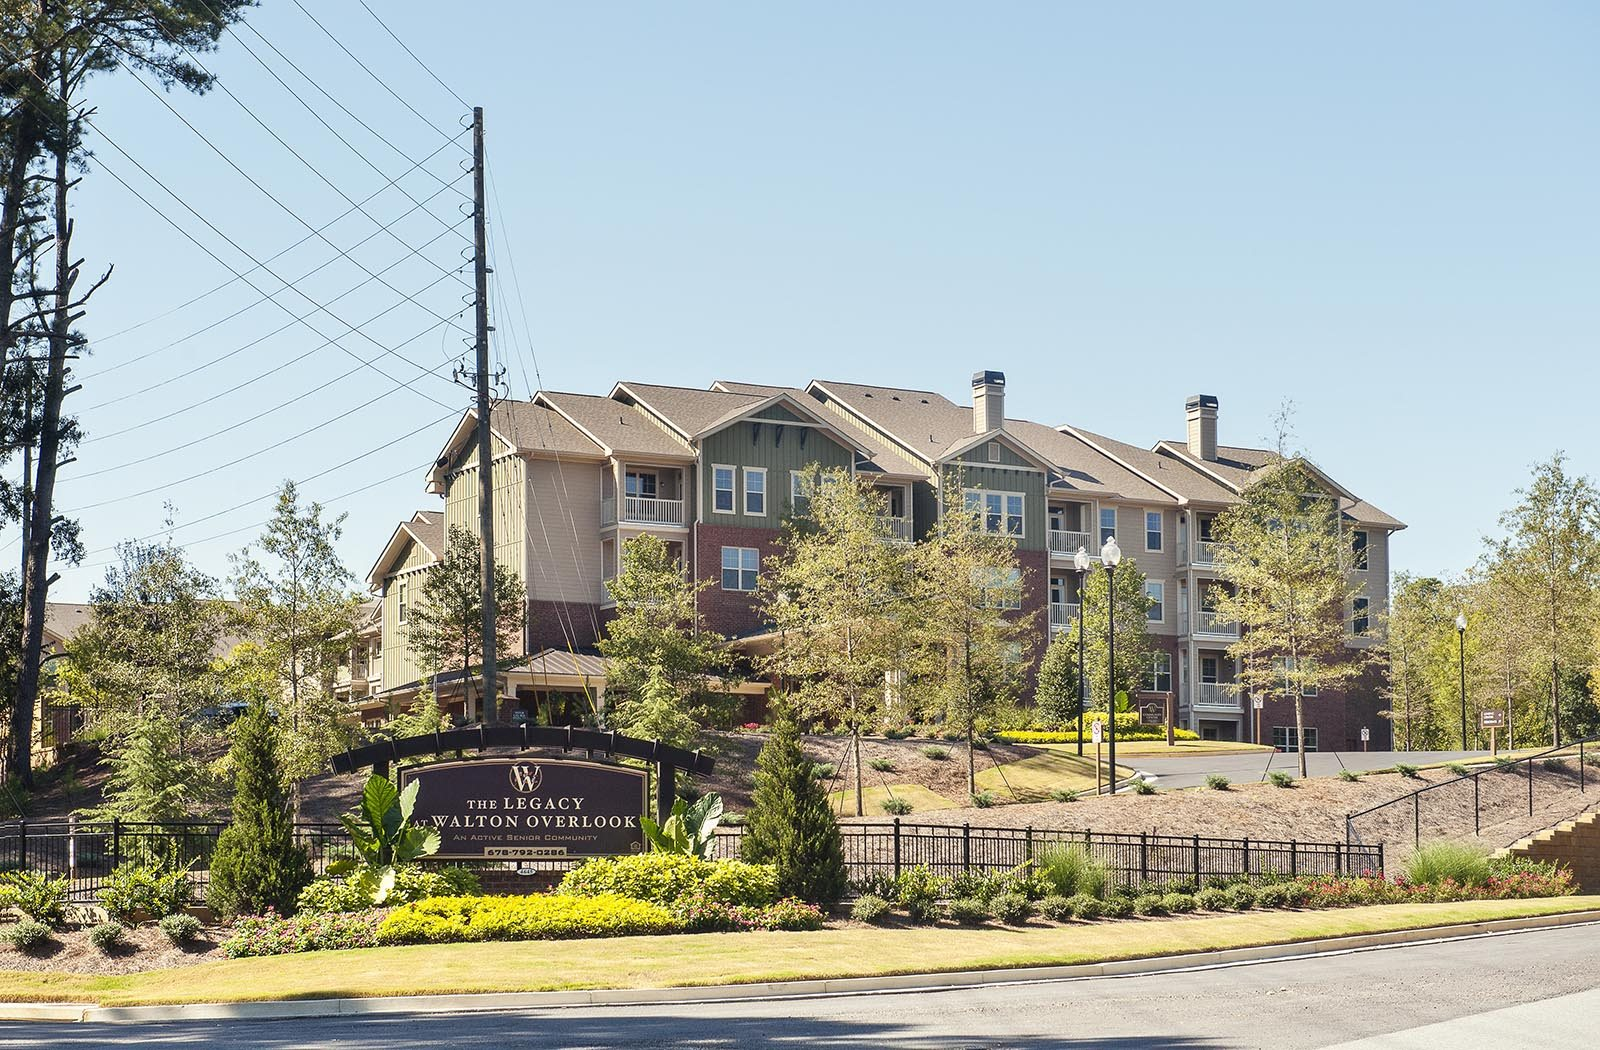 Legacy at walton overlook apartments in acworth ga for Apt theater schedule